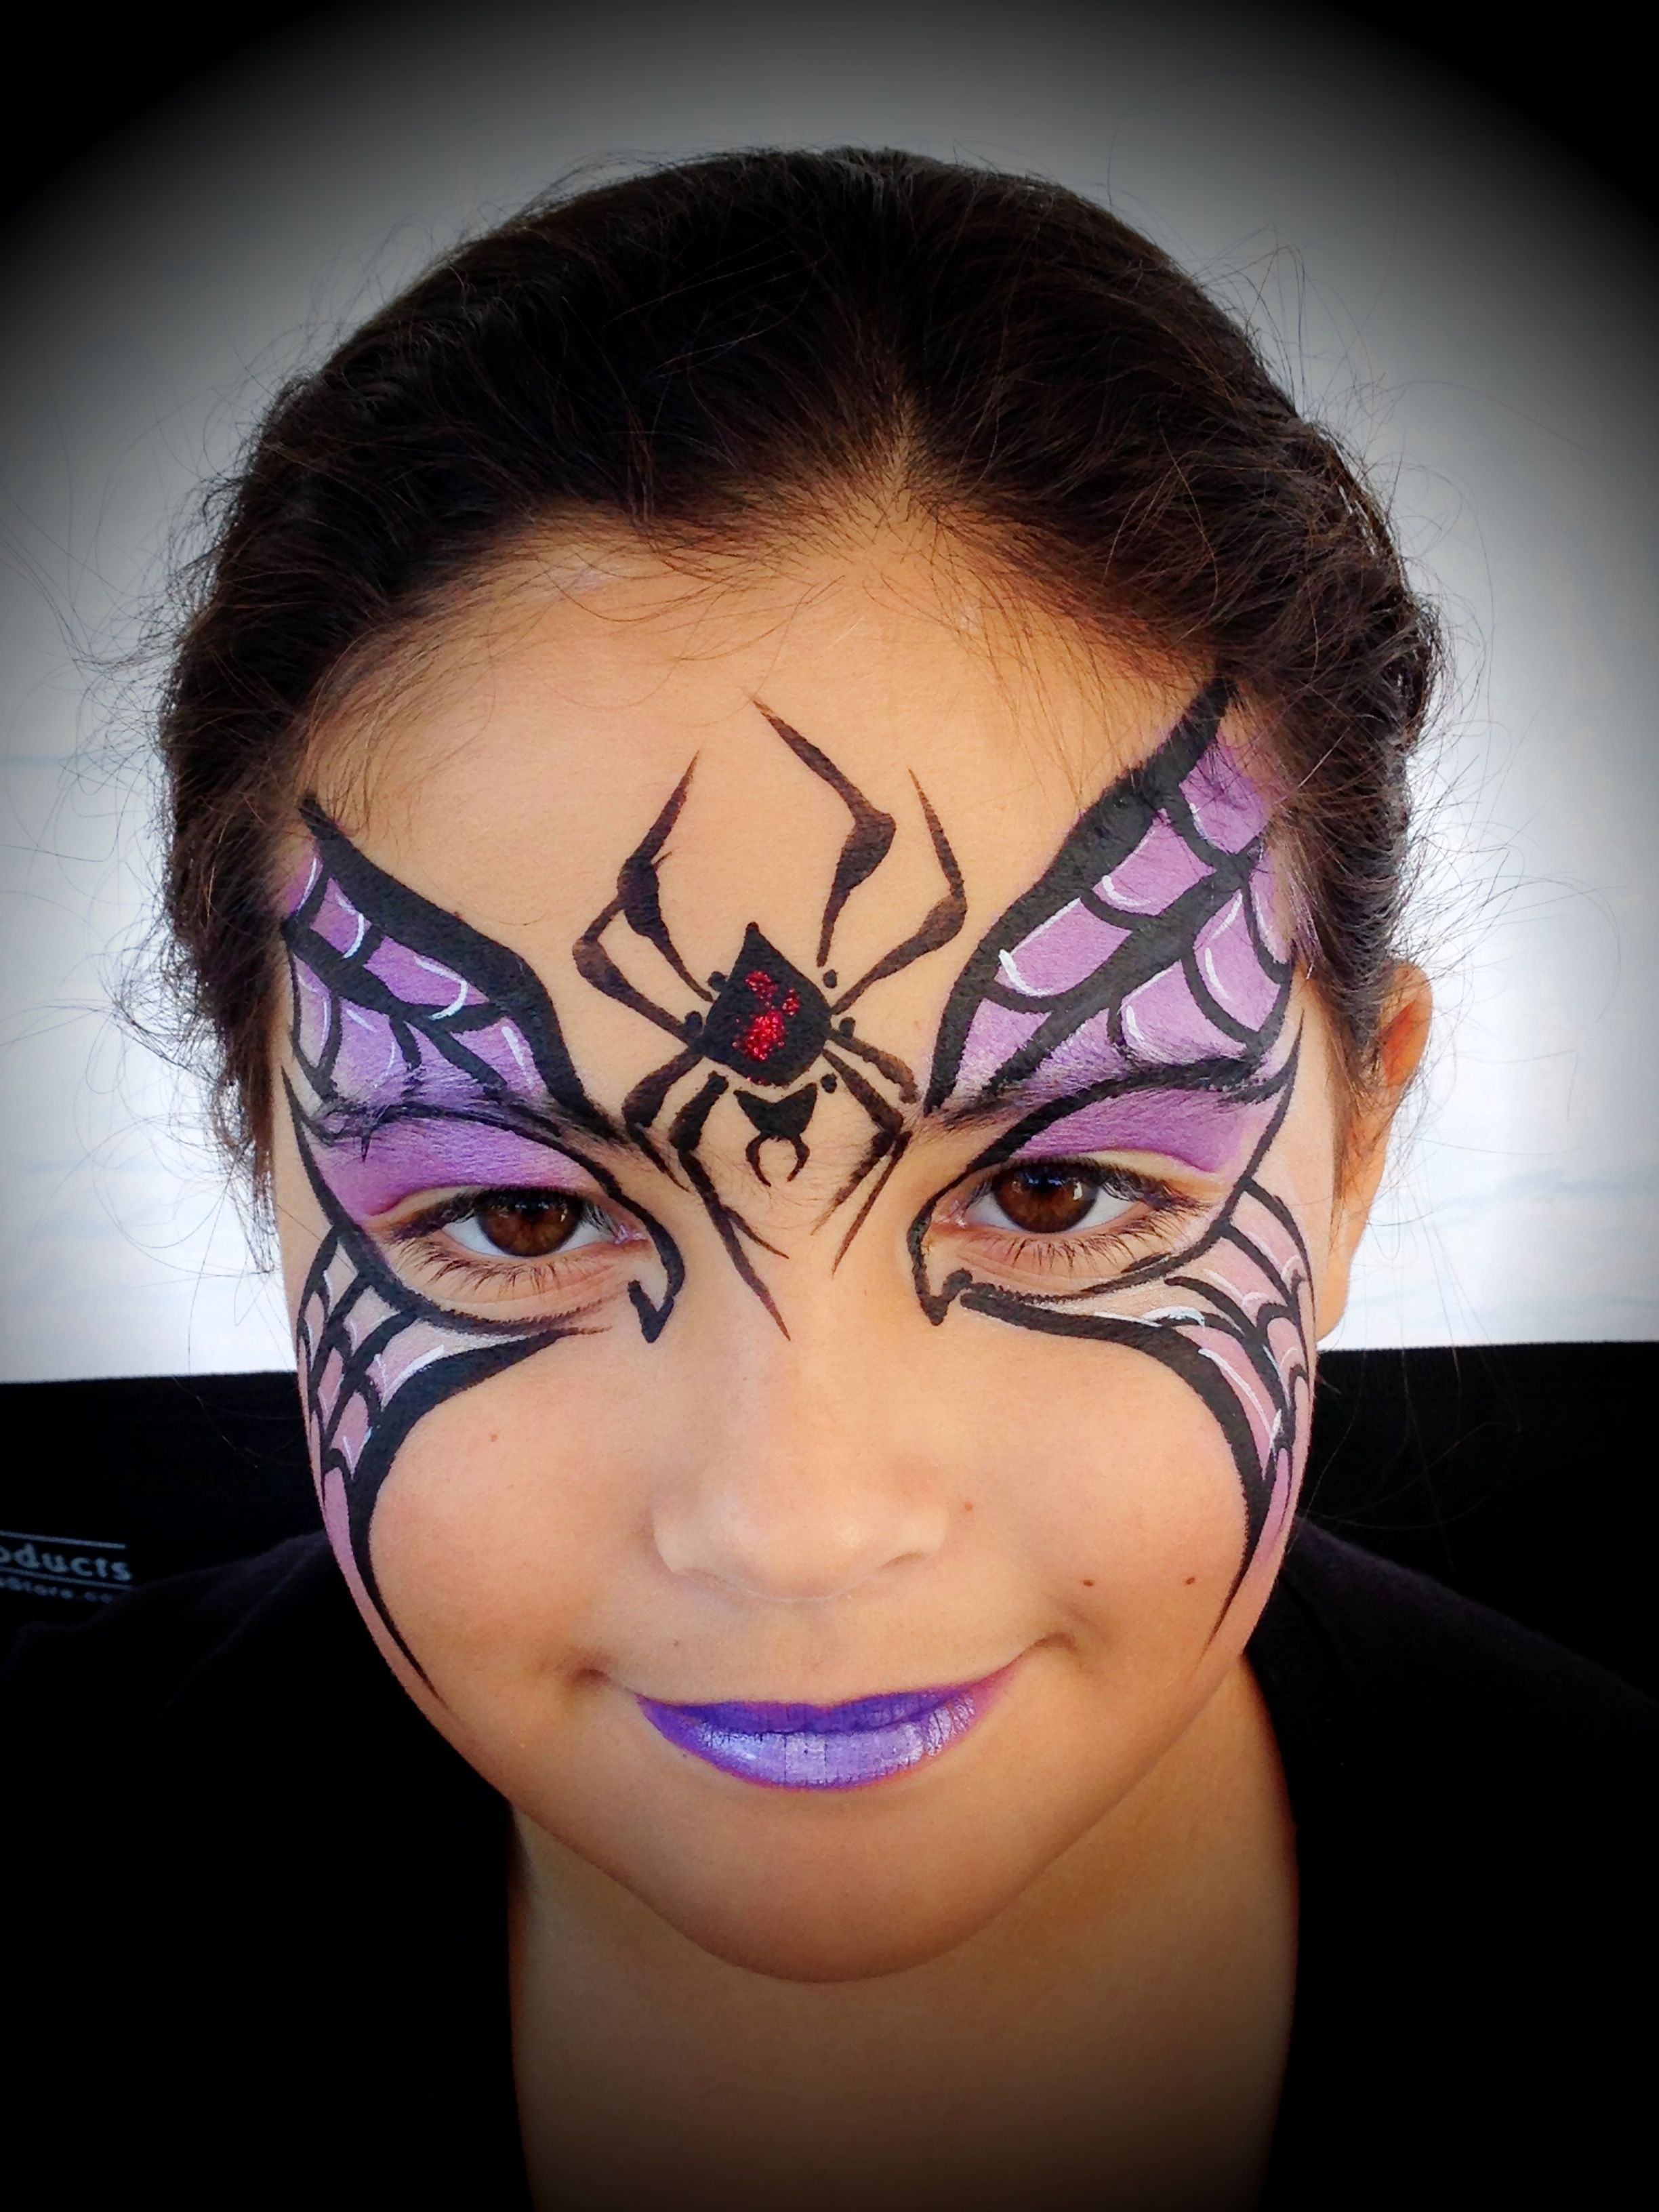 Spider web mask with gothic vibe Witch painting